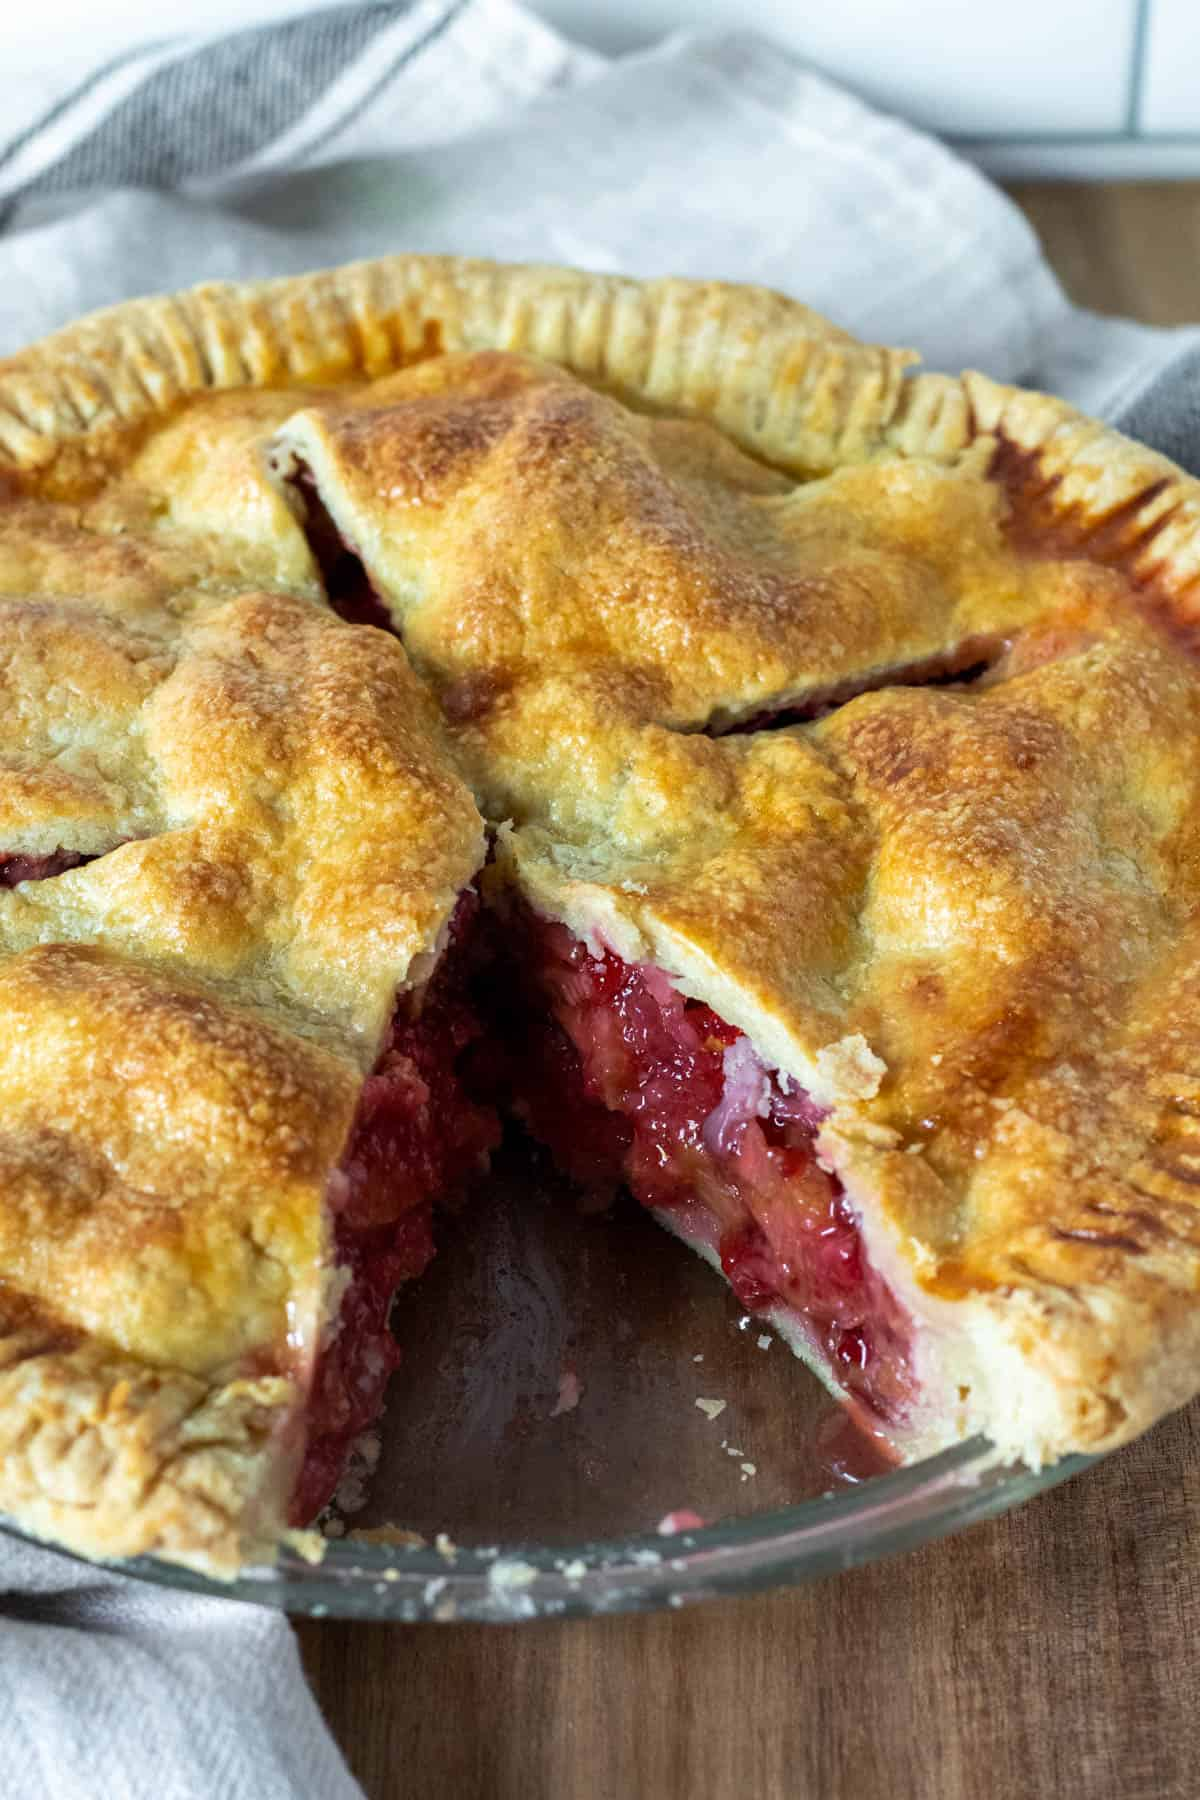 Close up of strawberry rhubarb pie with one piece cut out showing filling in crust.